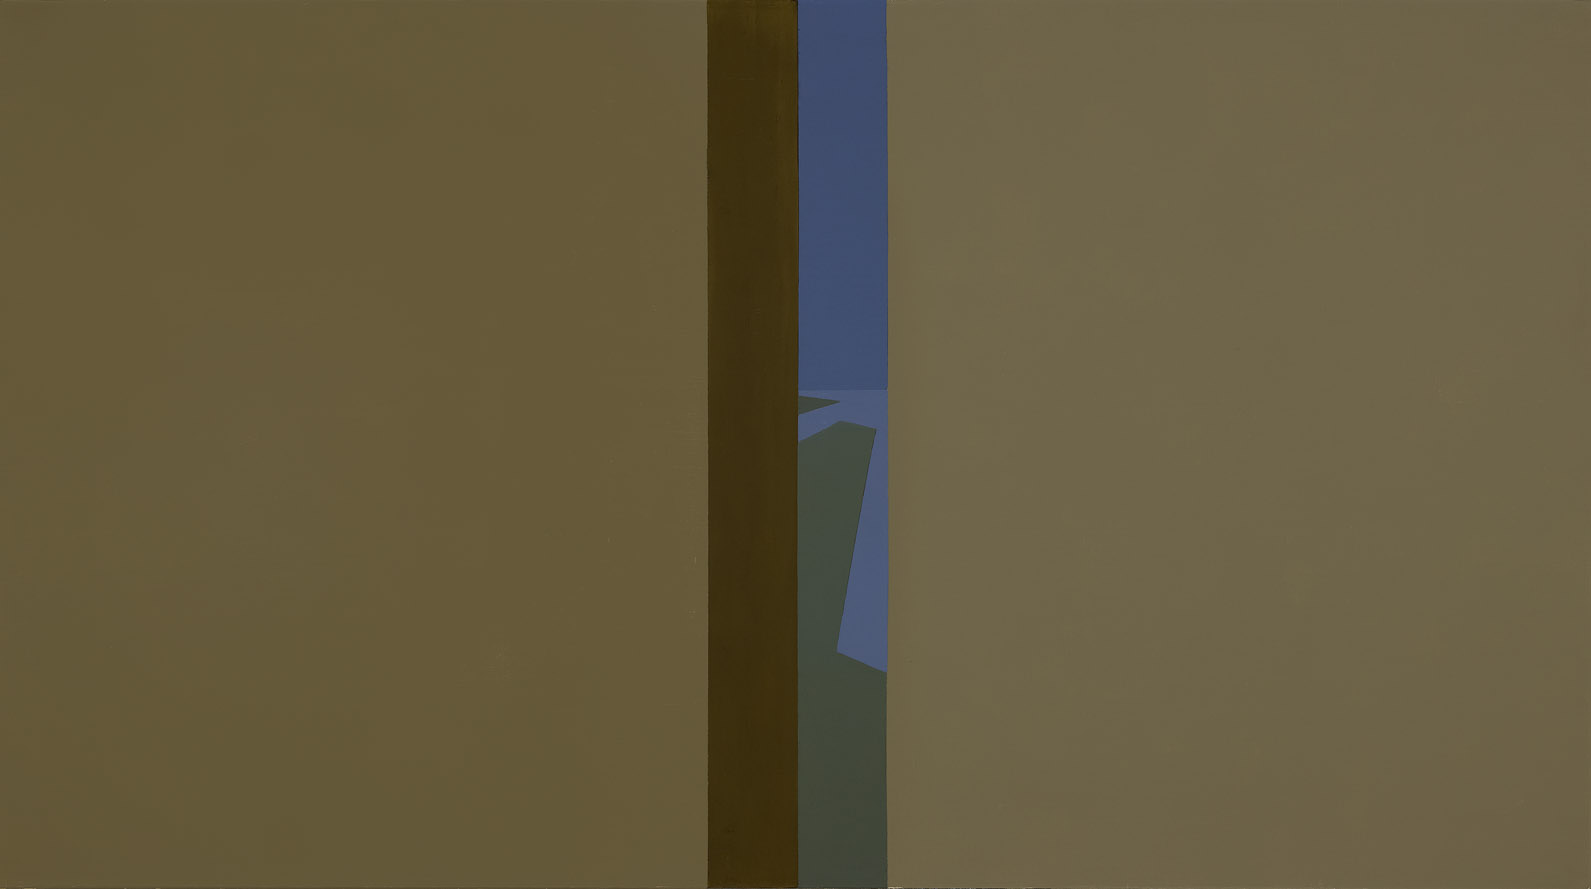 Narrow View , 1961  oil on canvas 30 x 54 inches; 76.2 x 137.2 centimeters